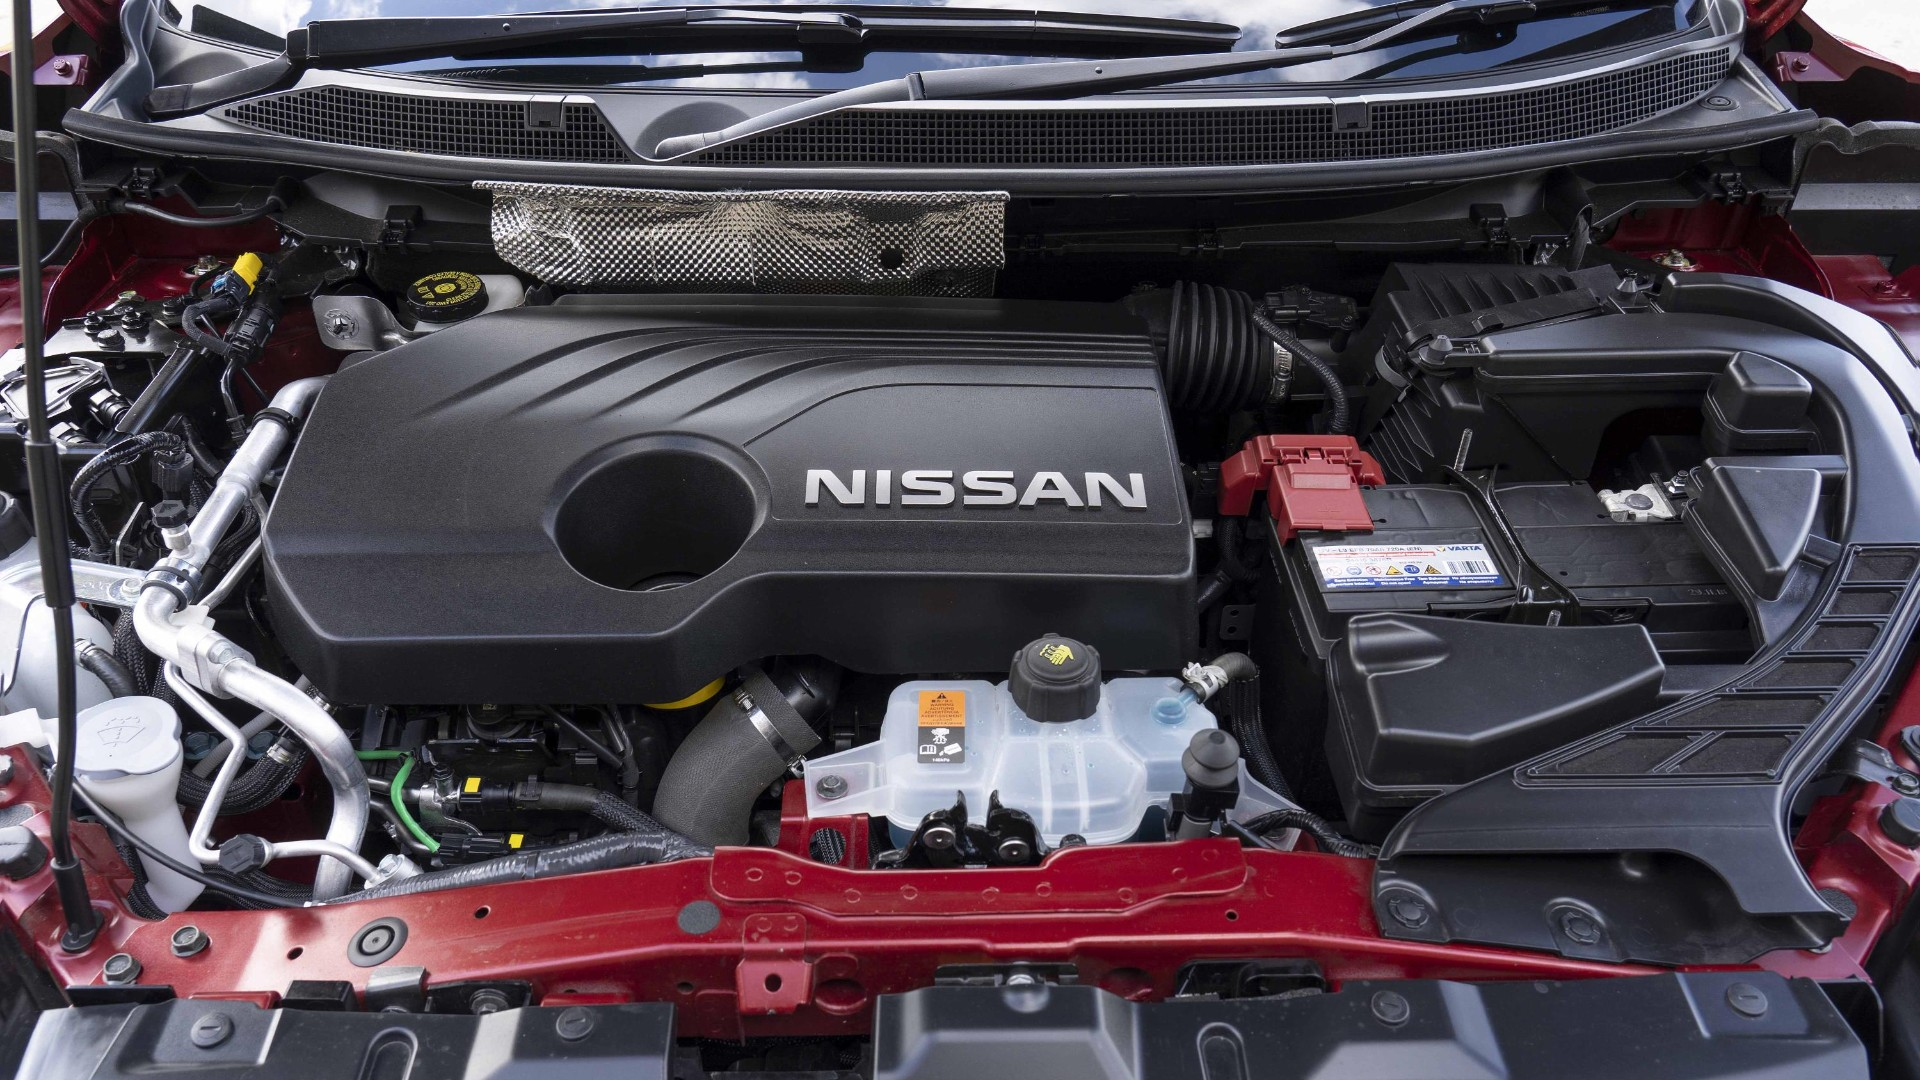 Nissan criticised over dirty diesel response